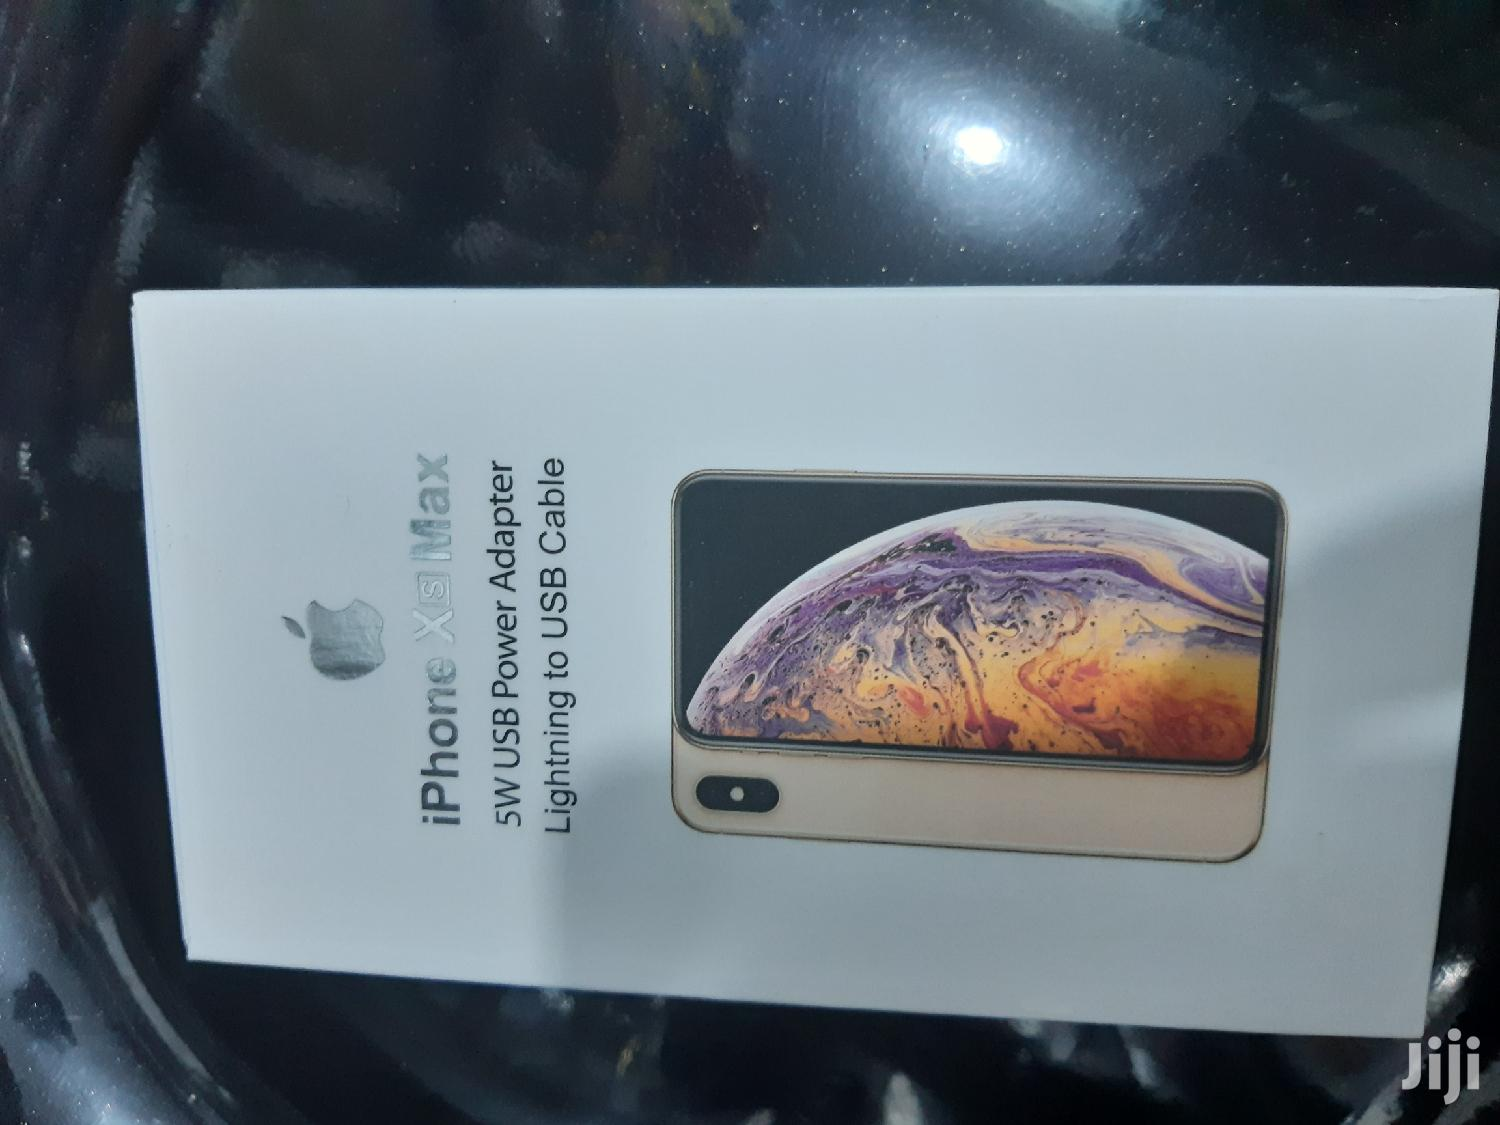 iPhone Charger | Accessories for Mobile Phones & Tablets for sale in Kampala, Central Region, Uganda